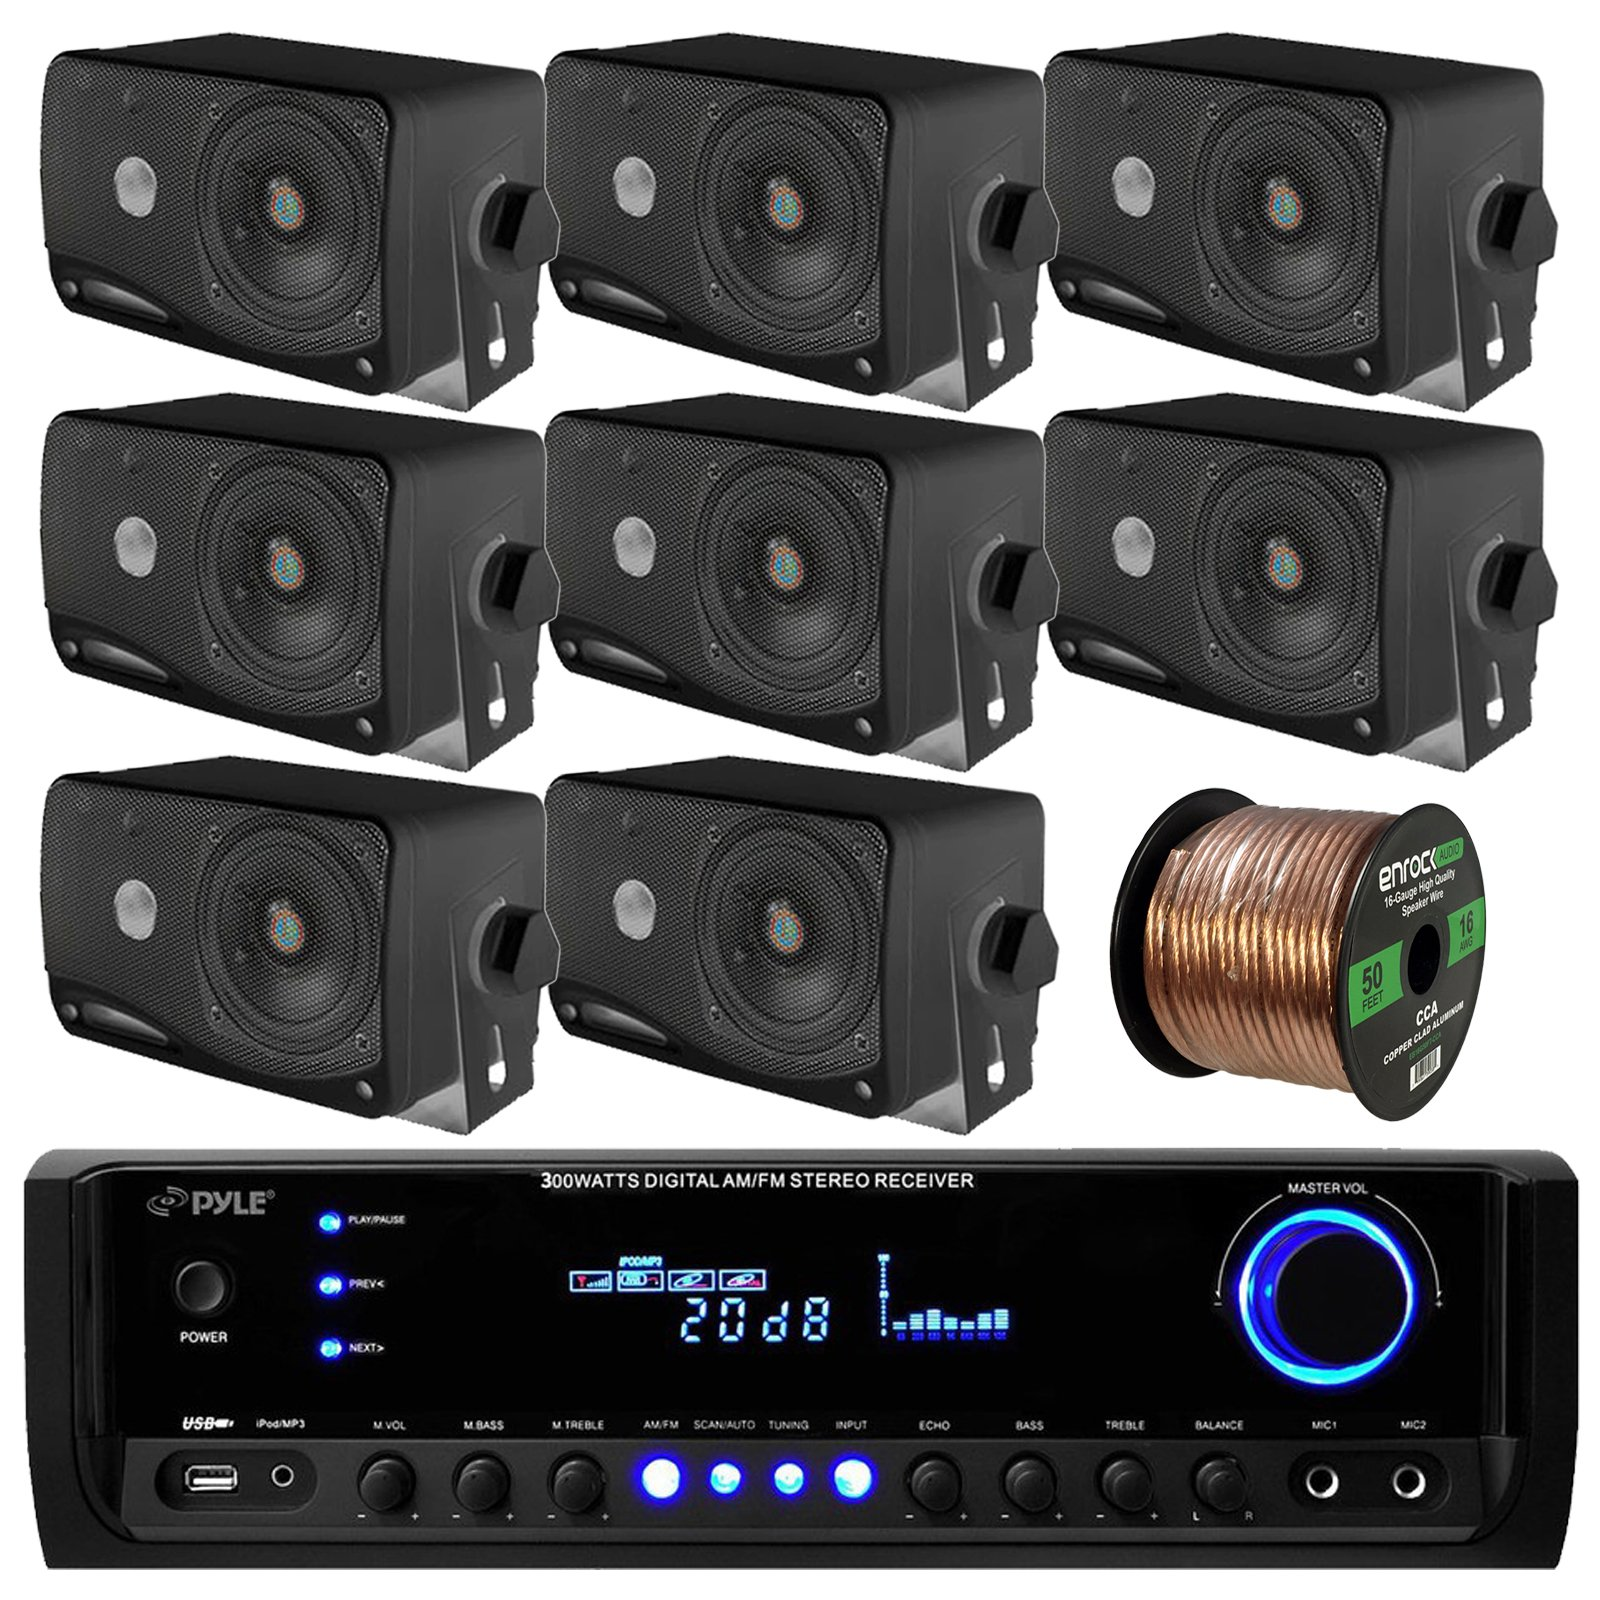 Pyle PT390BTU Bluetooth Digital Home Theater 300-Watt Stereo Receiver Bundle Combo With 8x 3'' Inch 3-Way Wall Mount Black Speakers + Enrock 50 Feet 16g Speaker Wire by EnrockAudioBundle